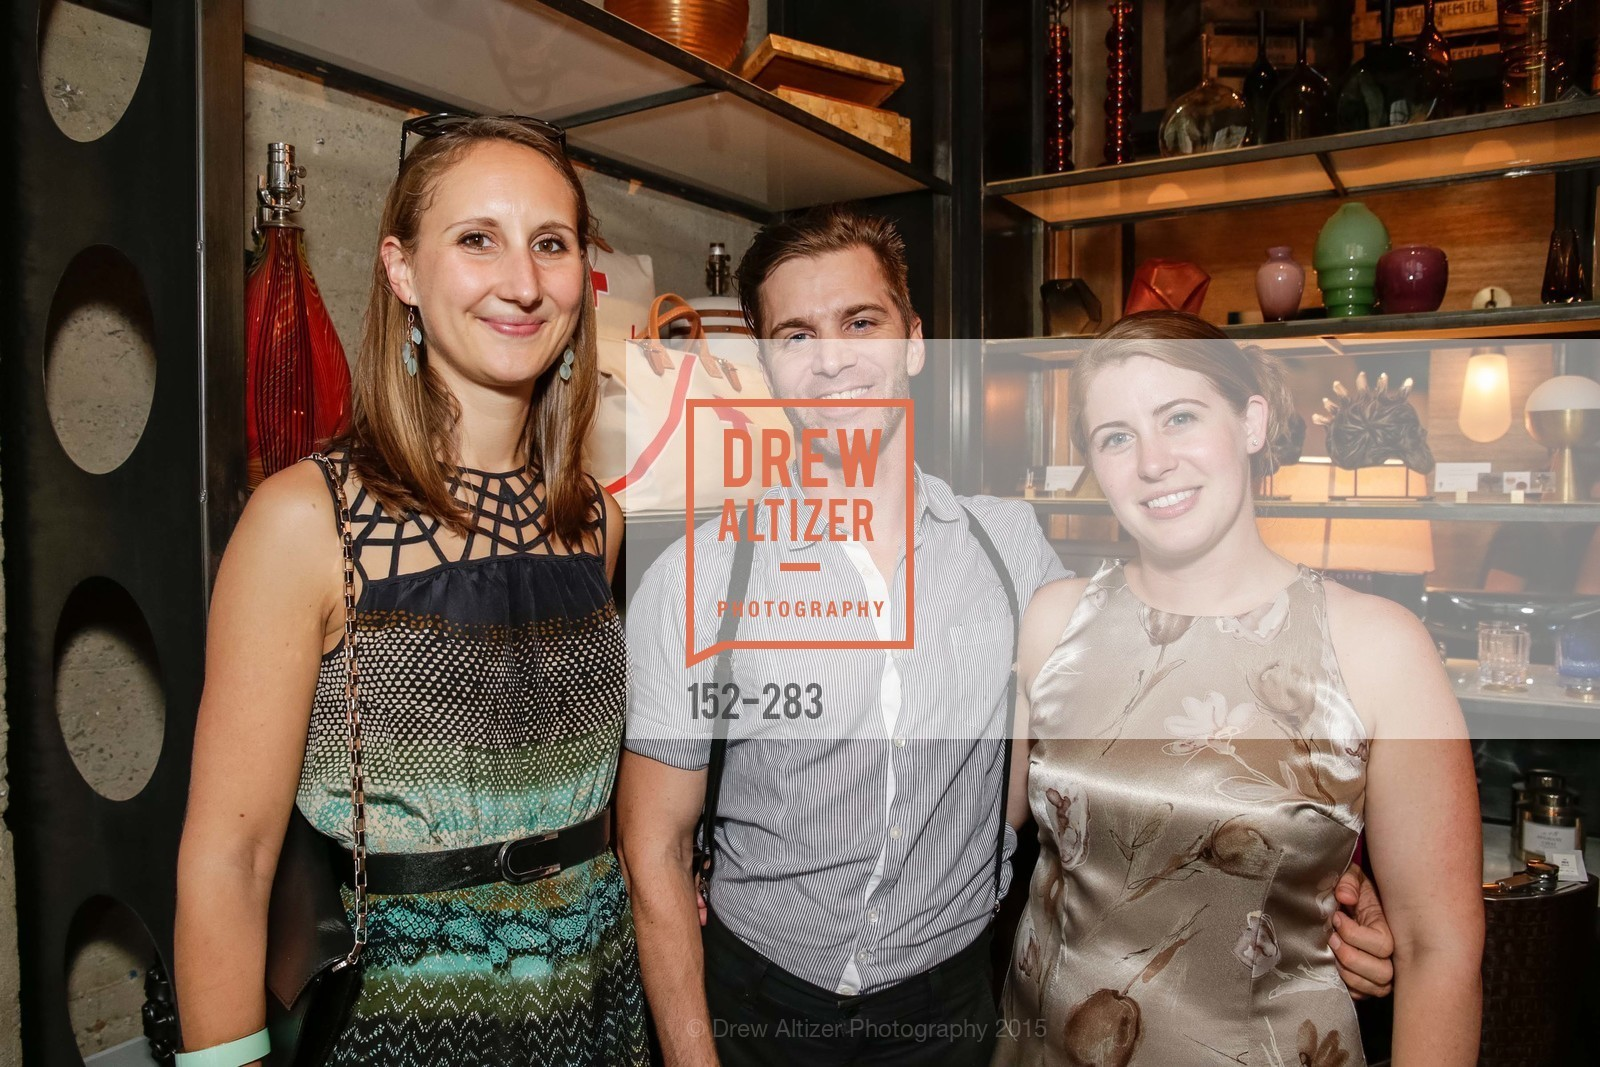 Naomi Pasztor, Christopher Havlichek, Jill Judd, Jay Jeffers Host Will Harlan, Jay Jeffers CAVALIER. 1035 Post Street, San Francisco 94109, September 10th, 2015,Drew Altizer, Drew Altizer Photography, full-service agency, private events, San Francisco photographer, photographer california